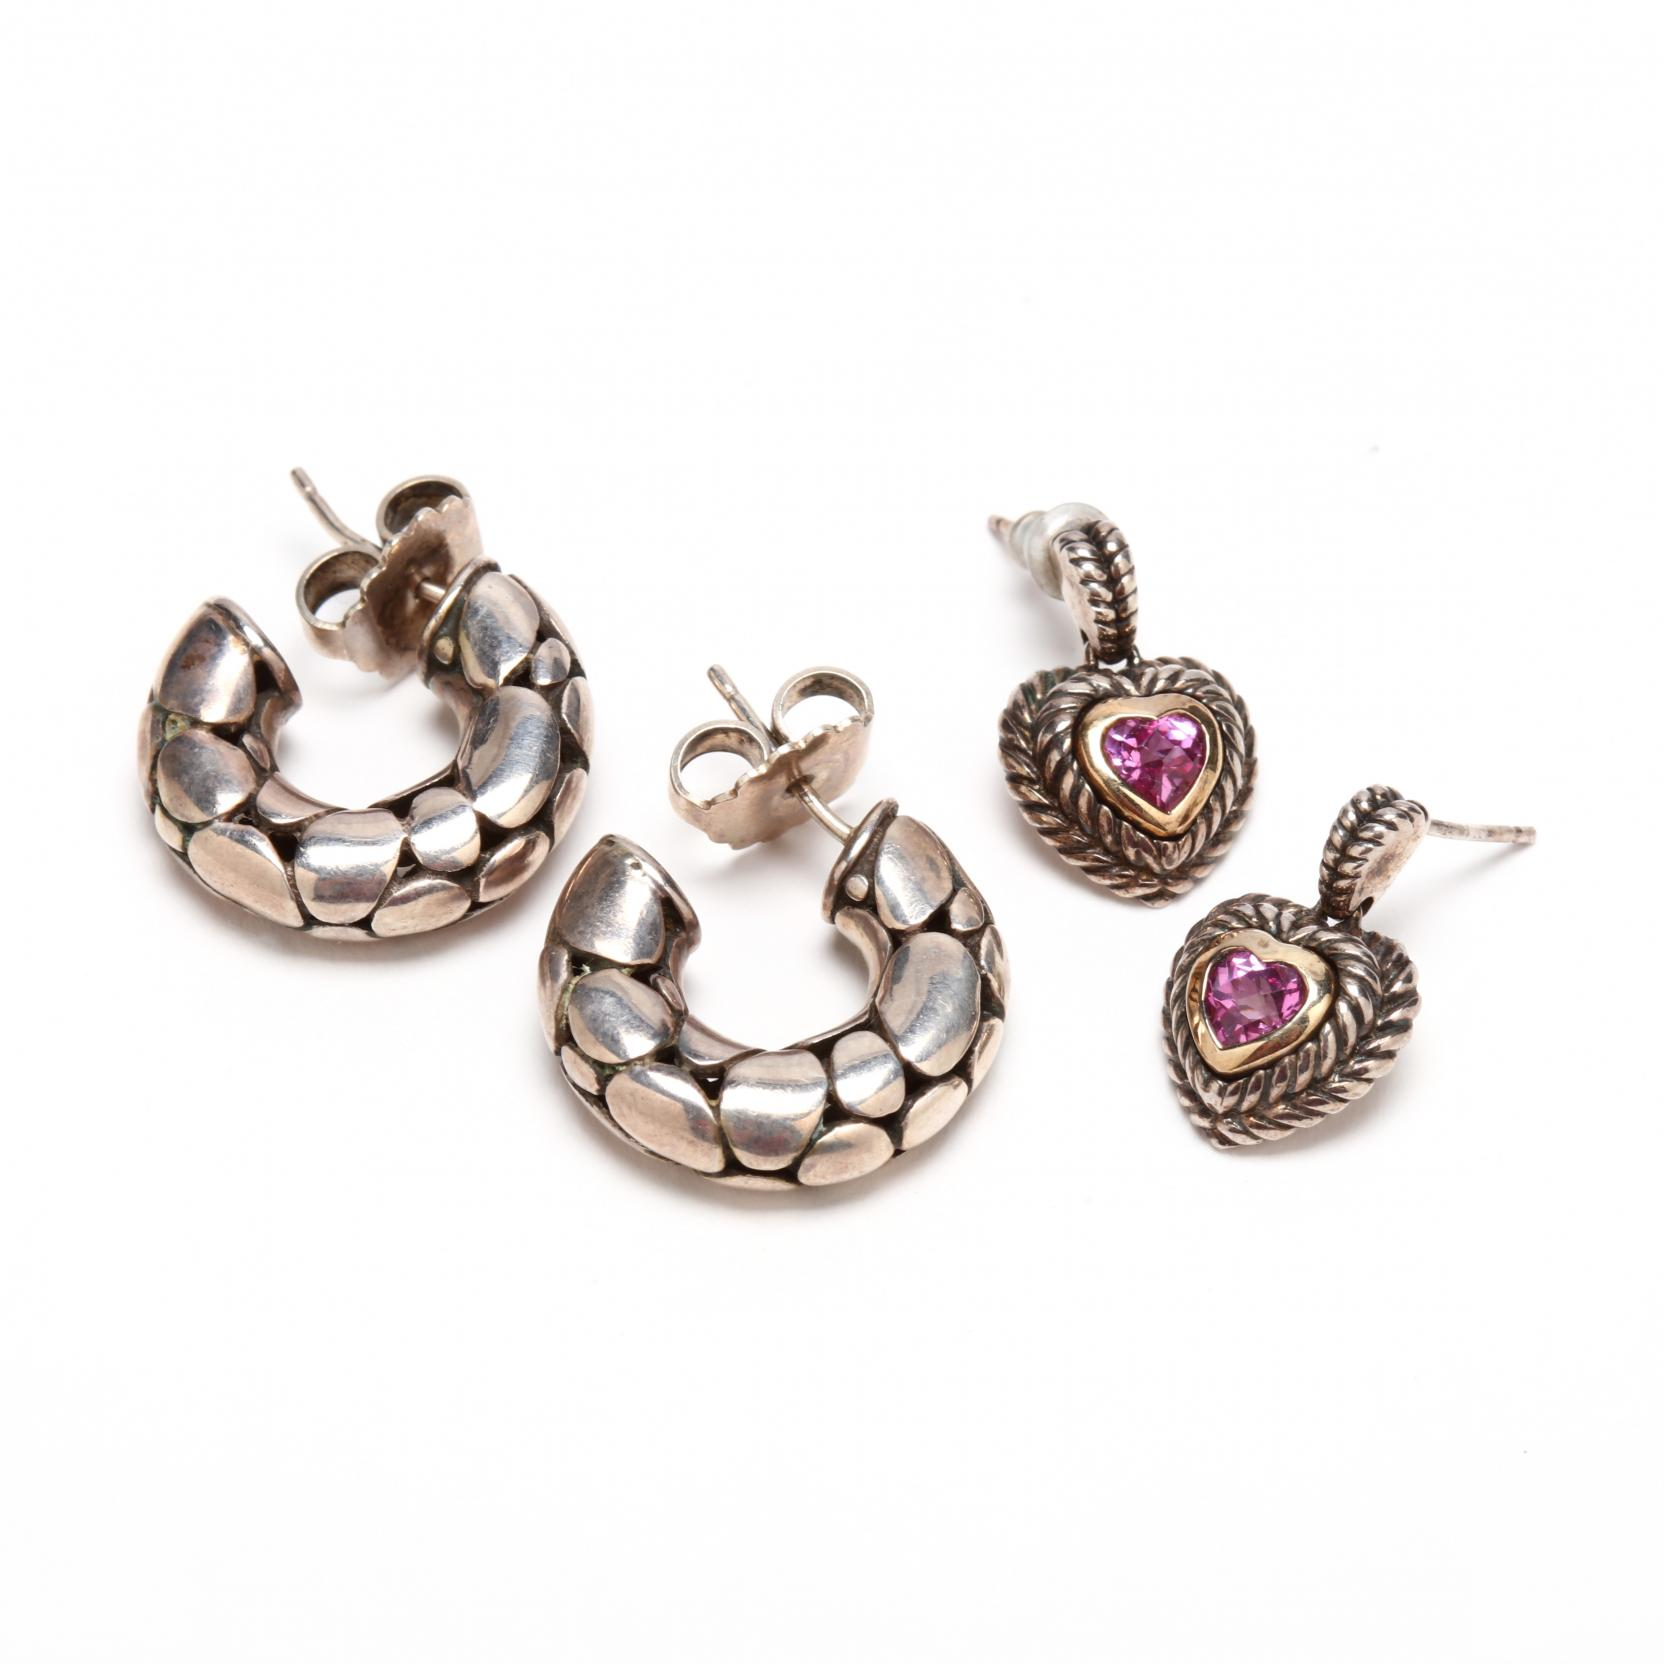 a-pair-of-john-hardy-sterling-earrings-and-a-pair-of-silver-and-10kt-gold-earrings